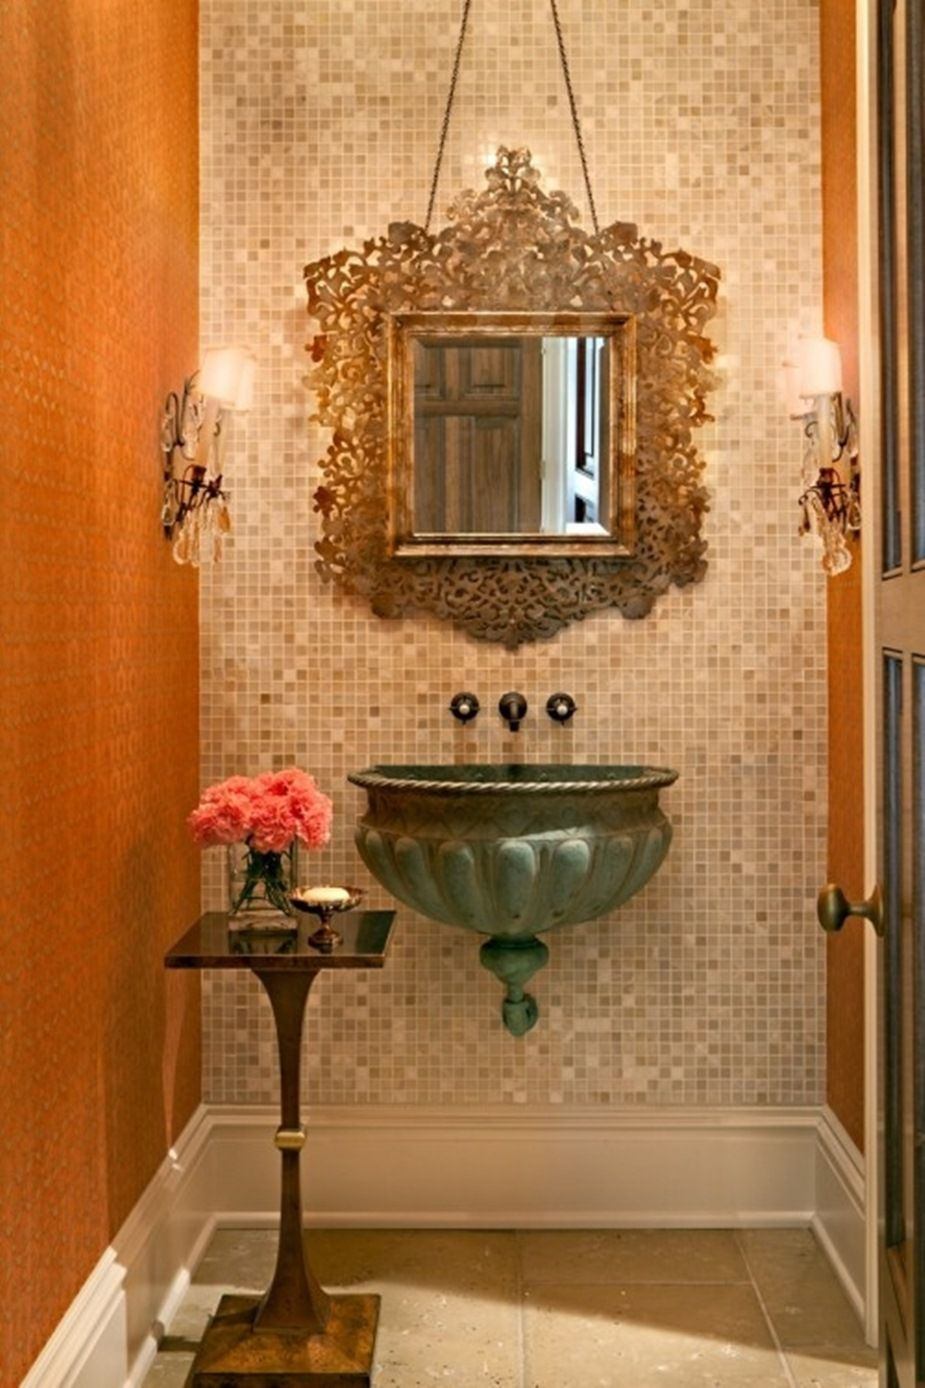 Captivating Powder Room Basins Pictures For Your Reference Bathroom Astounding Bathroom Decorating Design Ideas With